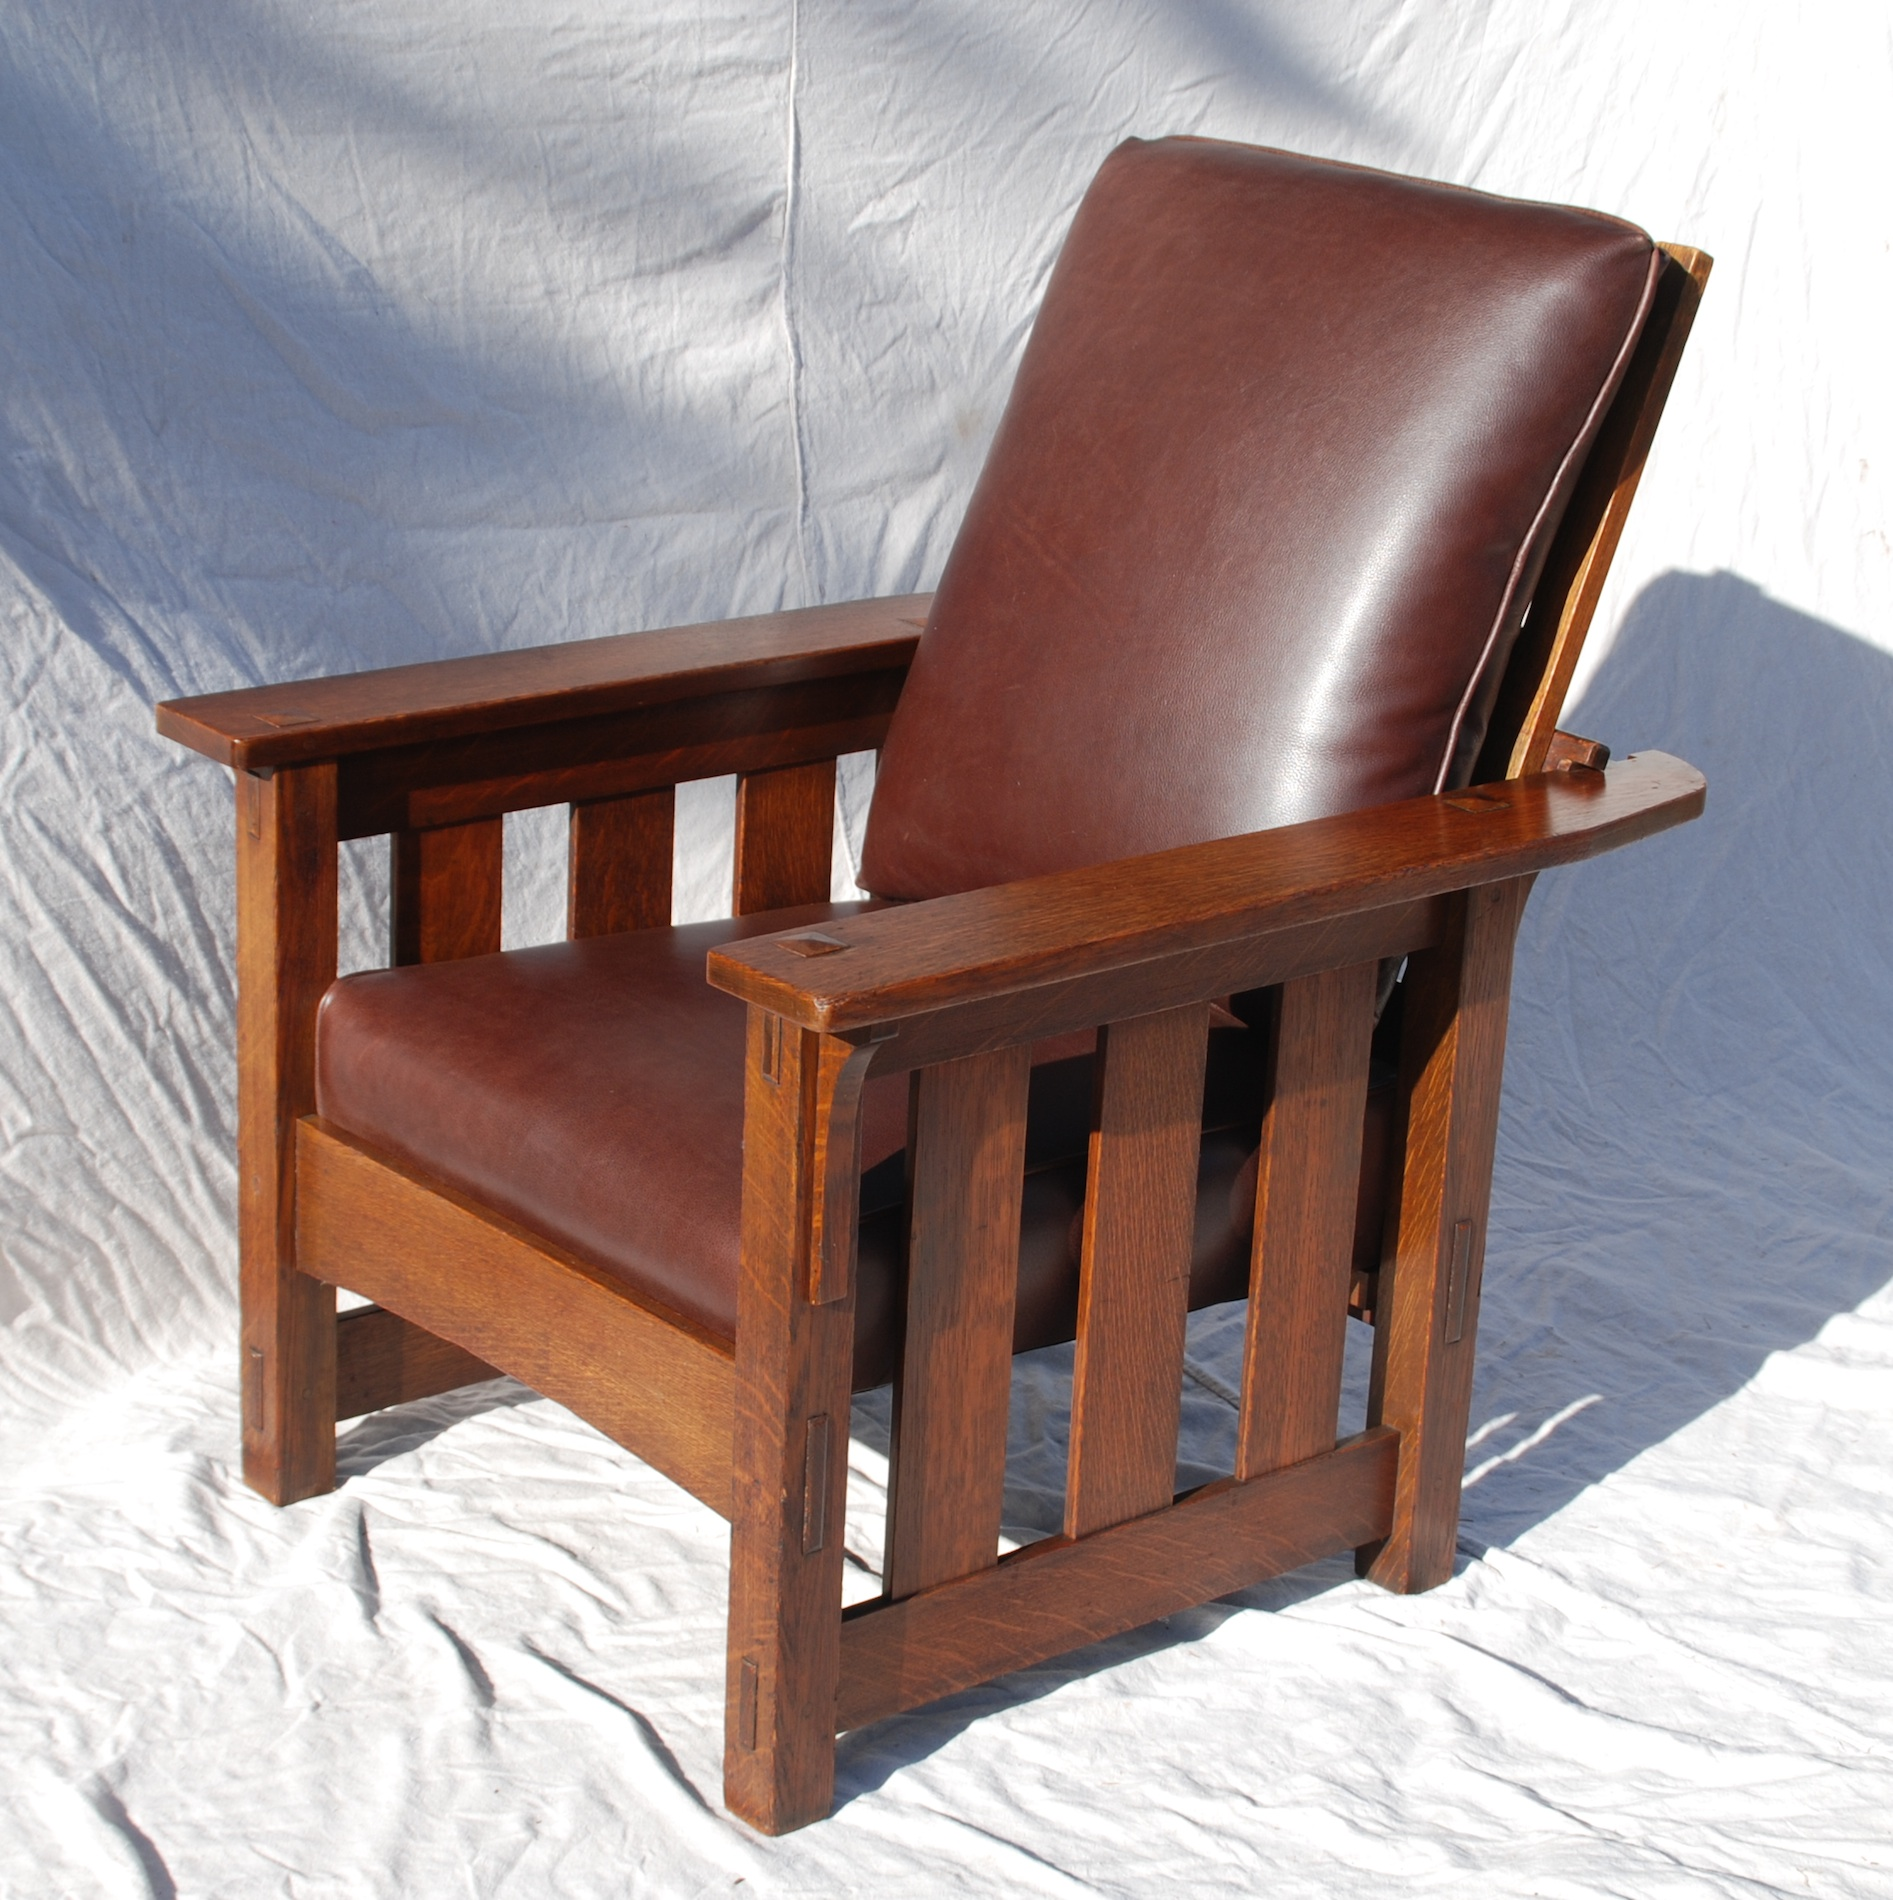 Superb Voorhees Craftsman Mission Oak Furniture   Lifetime Furniture Company , Grand  Rapids Bookcase And Chair Co. Morris Chair